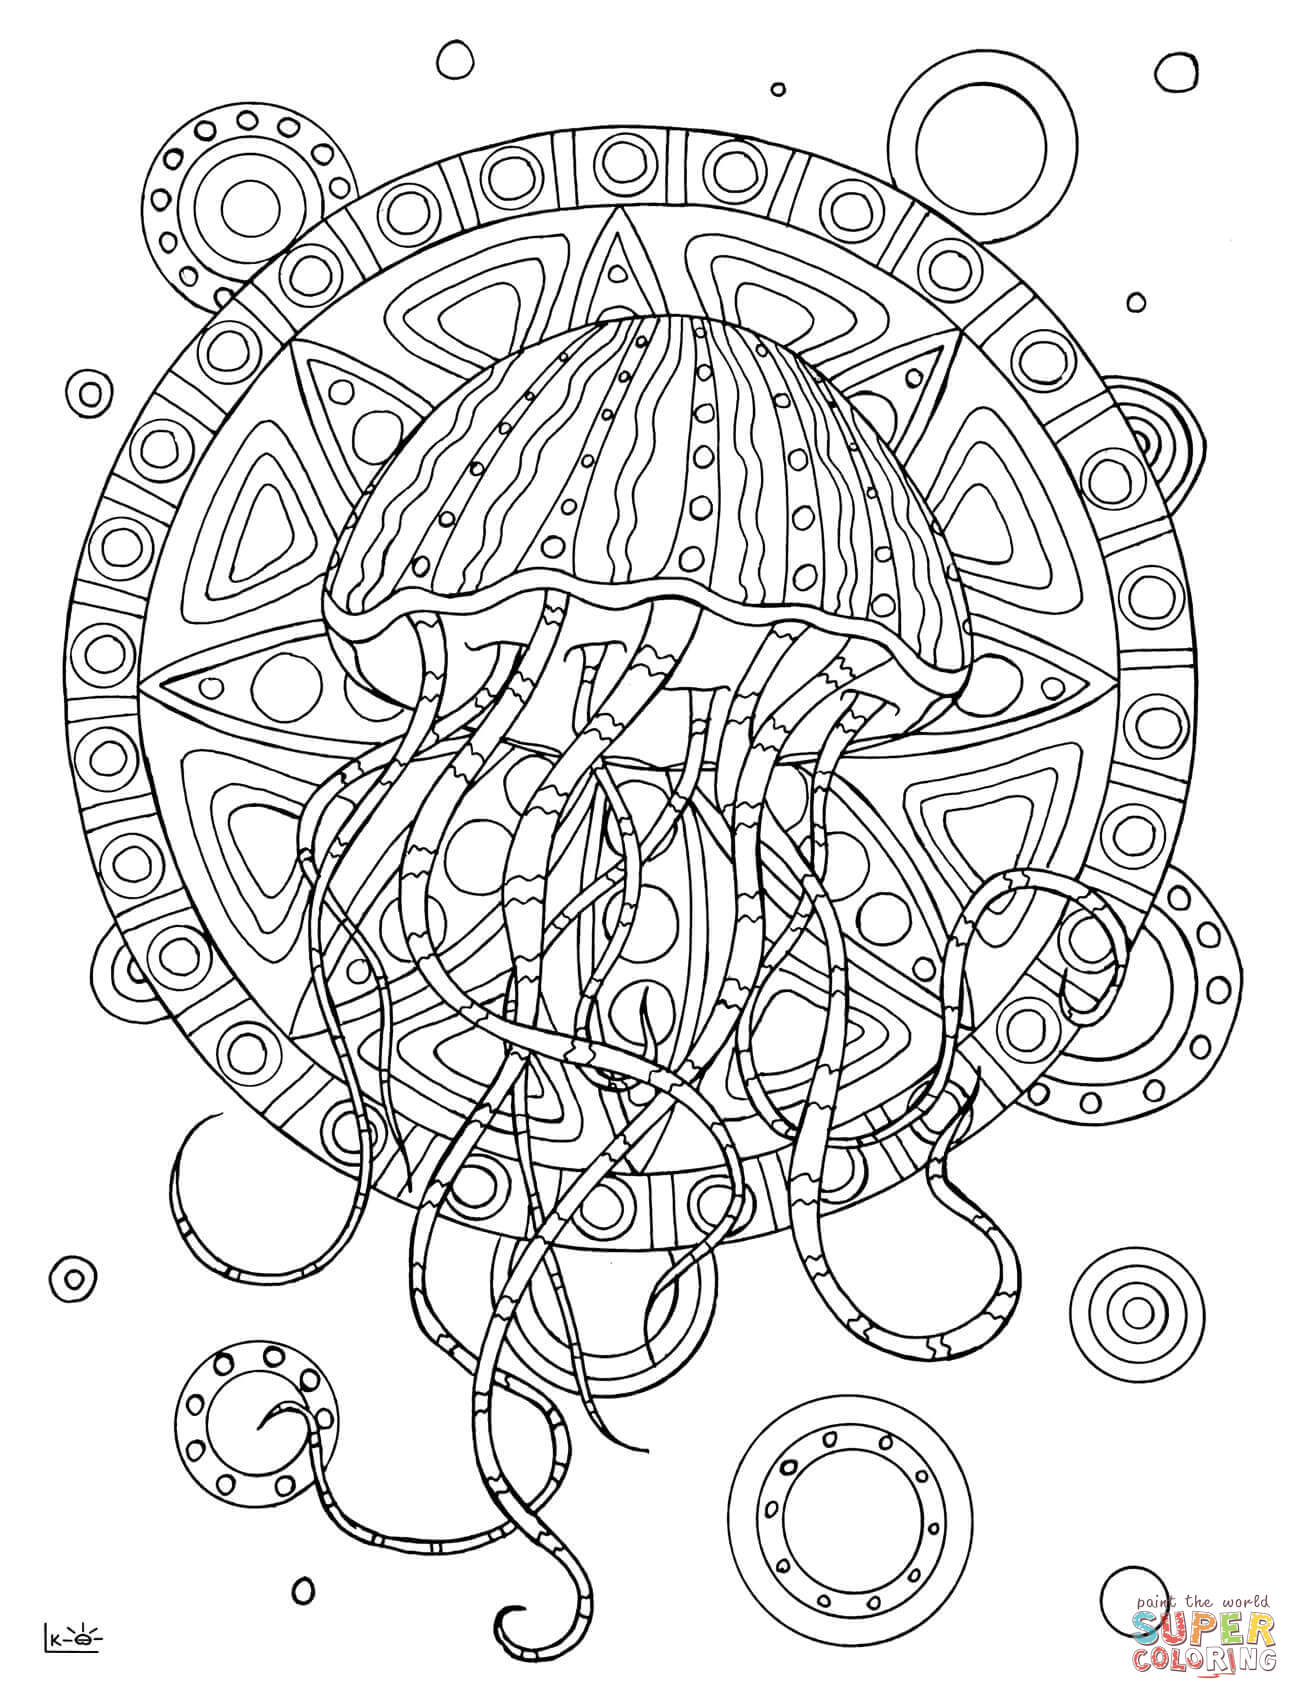 Big j coloring pages - Big J Coloring Pages Jellyfish With Tribal Pattern Coloring Page Free Printable Download